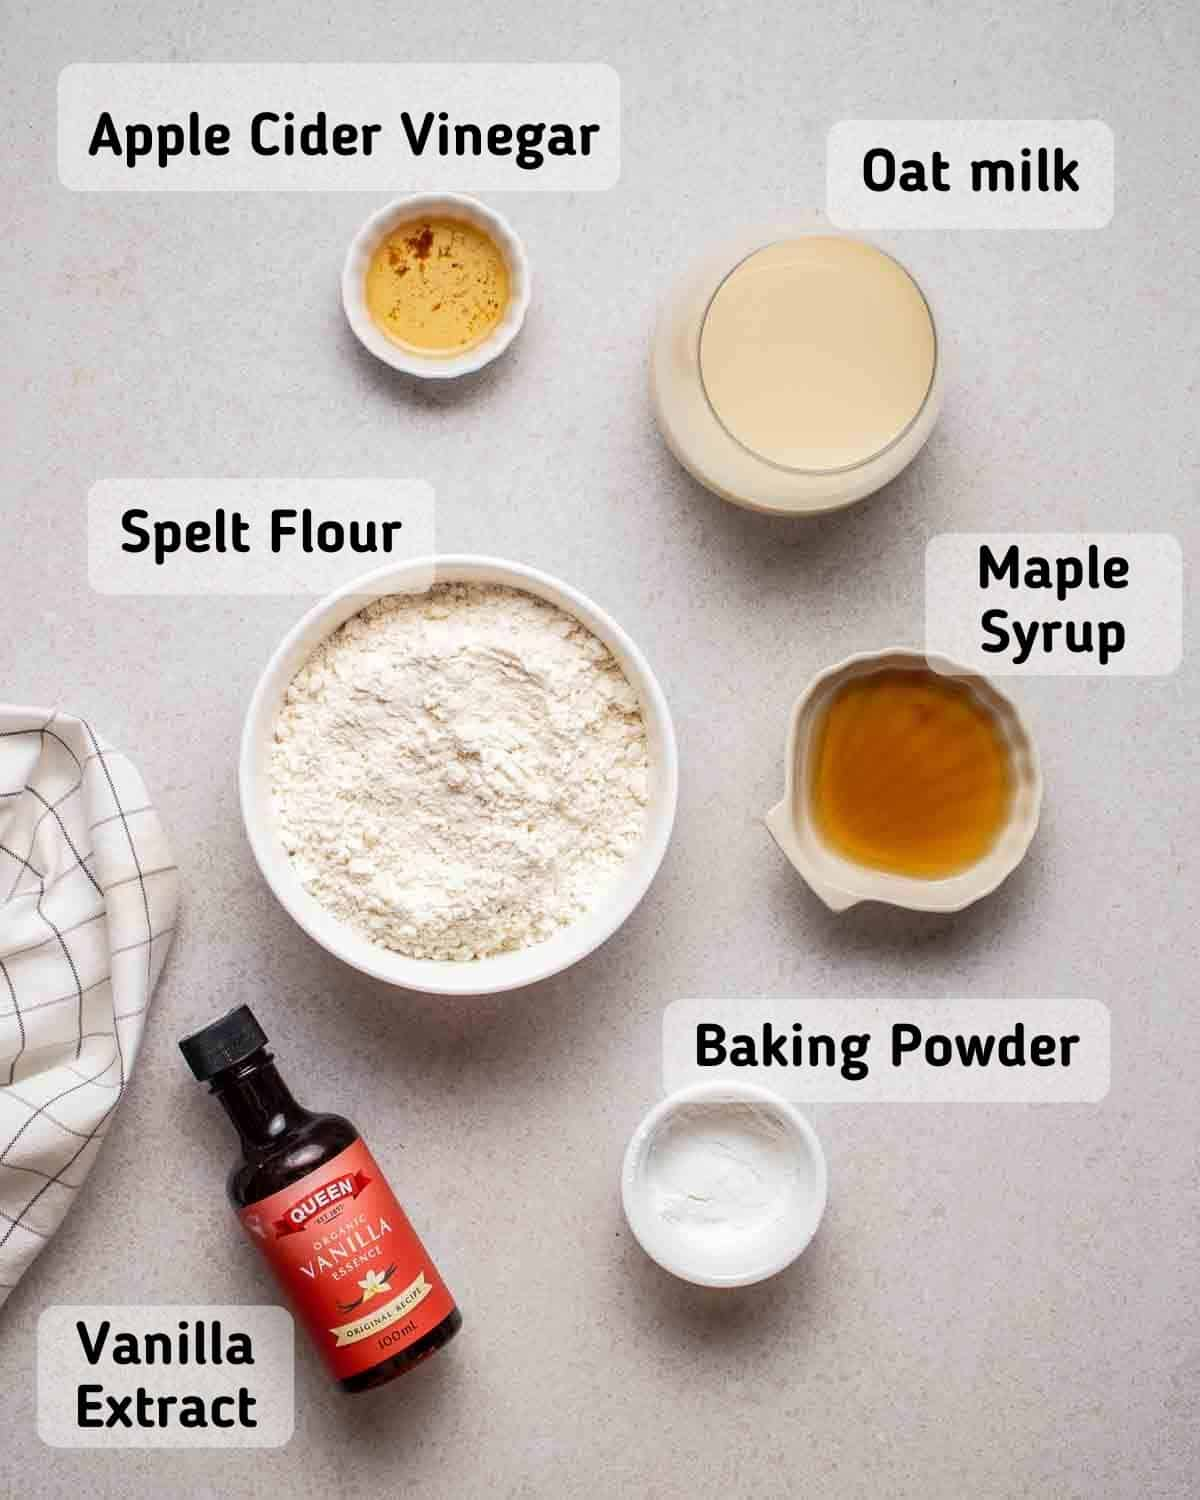 Ingredients needed for pancakes like flour, vinegar, oat milk, syrup, baking powder and vanilla extract on grey background.